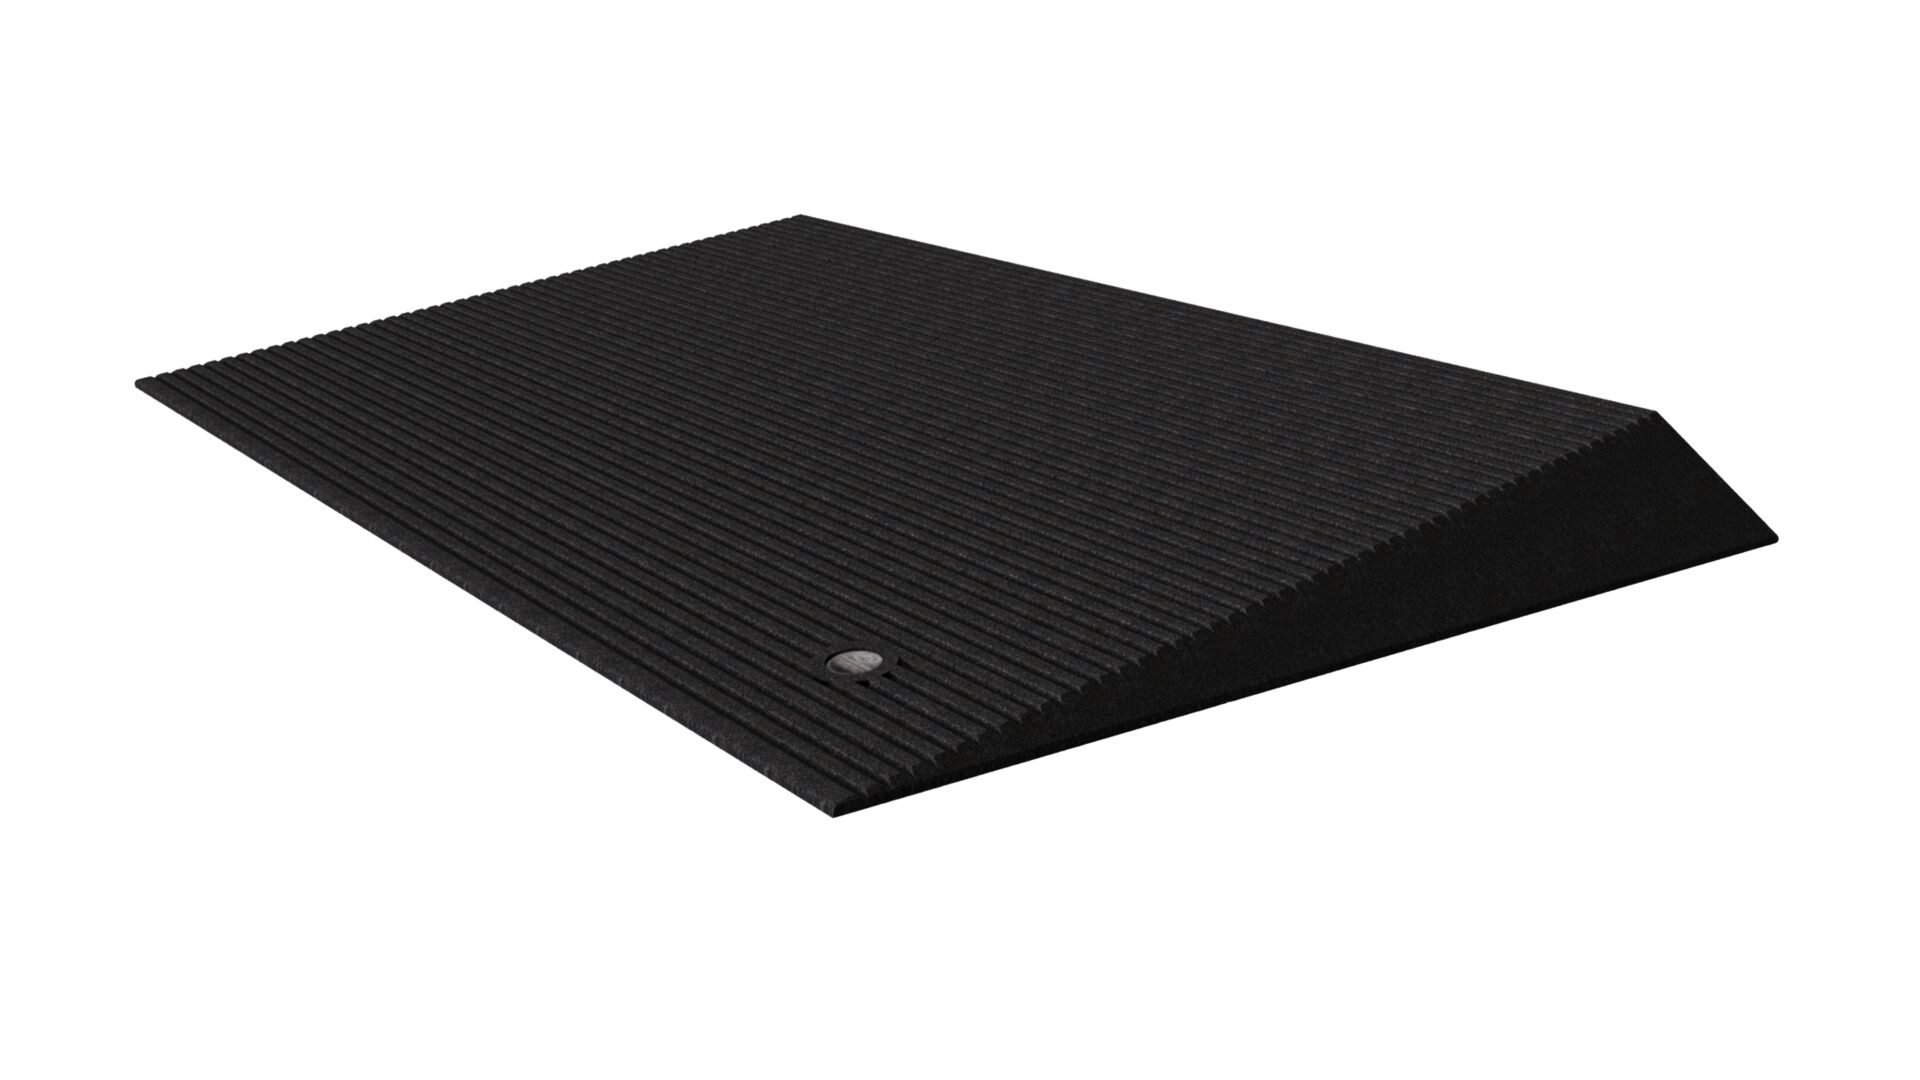 TRANSITIONS® Angled Entry Mat - Picture 06